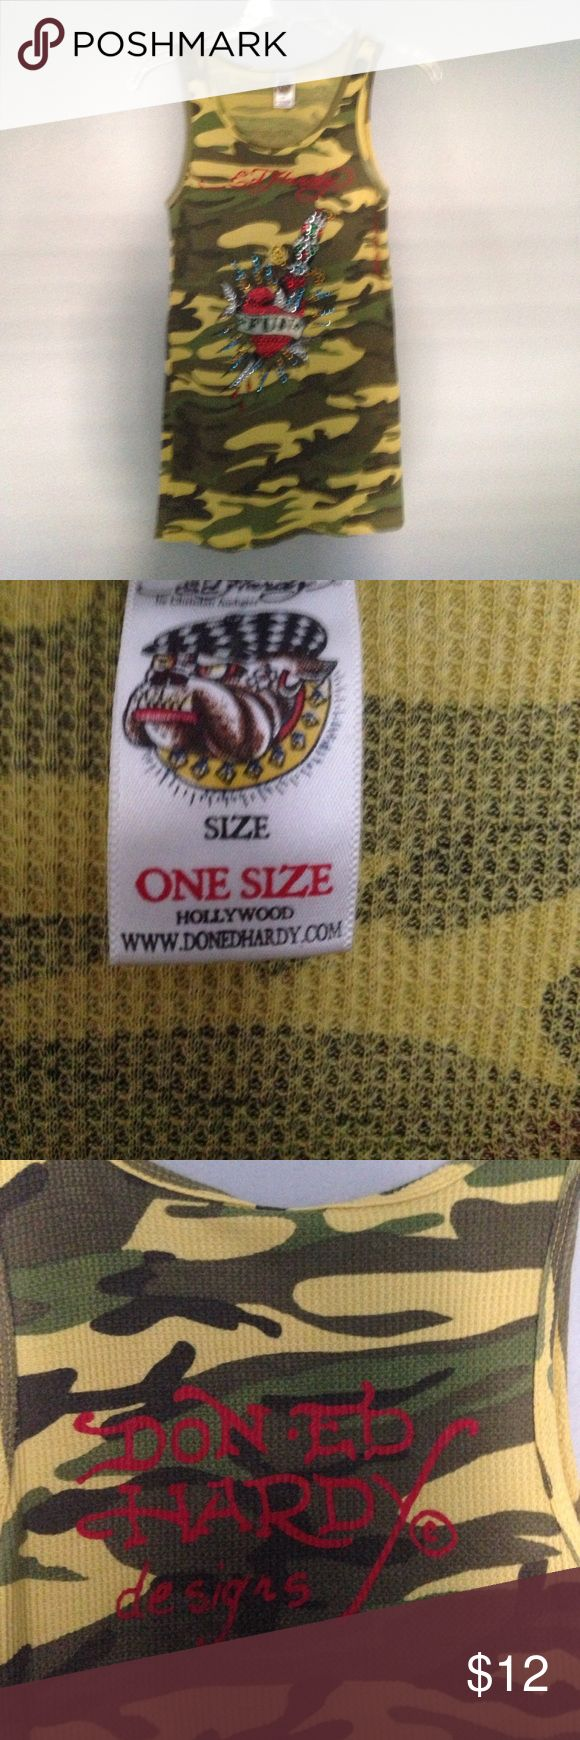 """Ed Hardy camp design tank top One Size Don Ed Hardy designed tank top Yellow and green camo design with red sequins heart on front 100% cotton One size 13"""" armpit to armpit (stretches) 27"""" length from shoulder to hem Great used condition Ed Hardy Tops Tank Tops"""